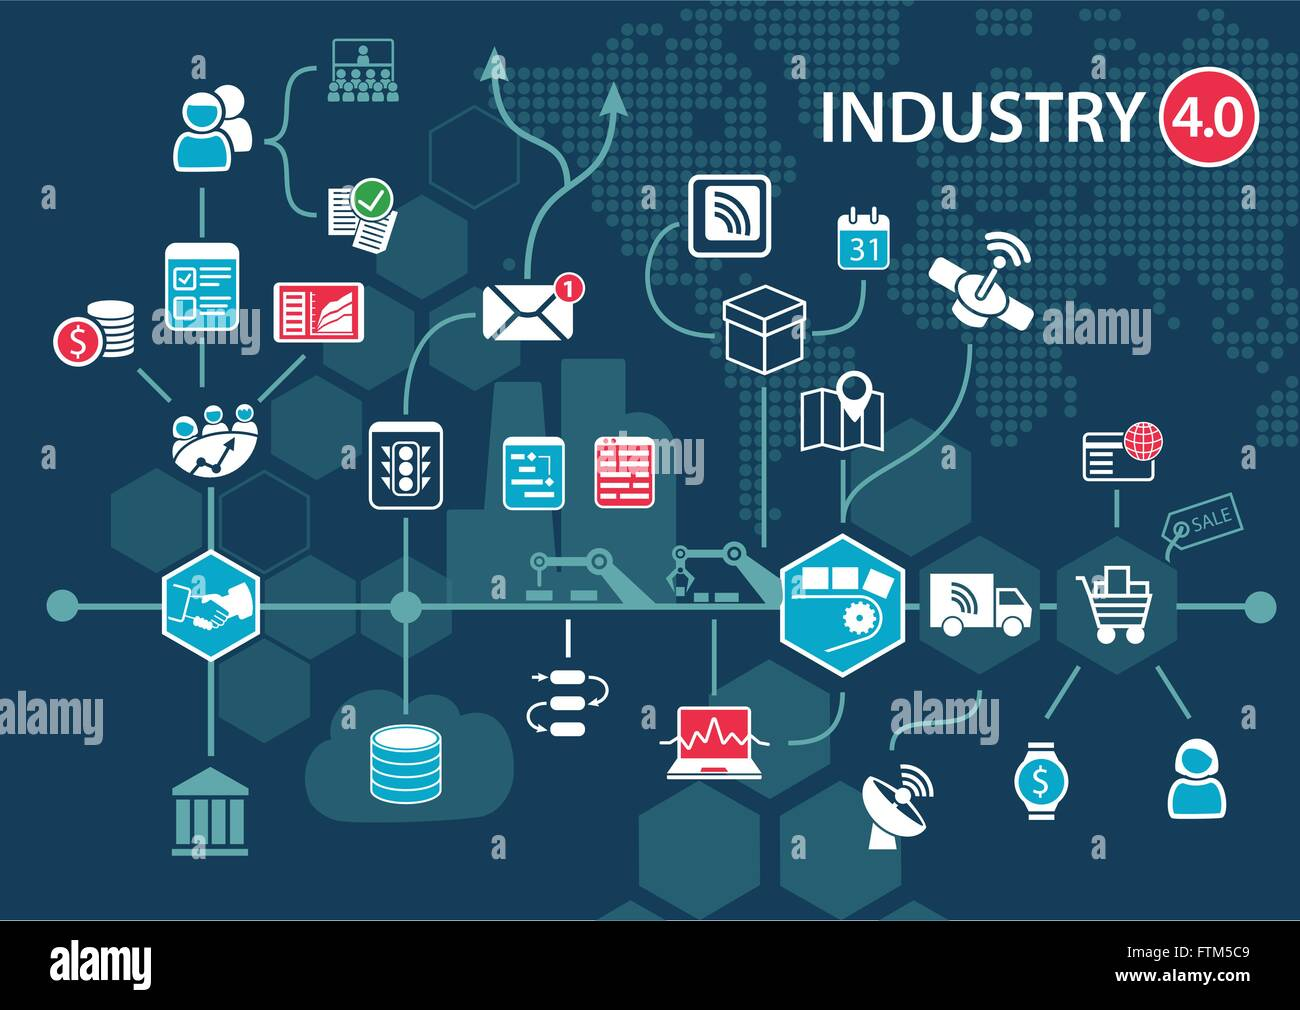 Industry 4.0 (industrial internet) concept and infographic. Connected devices and objects with business automation - Stock Image